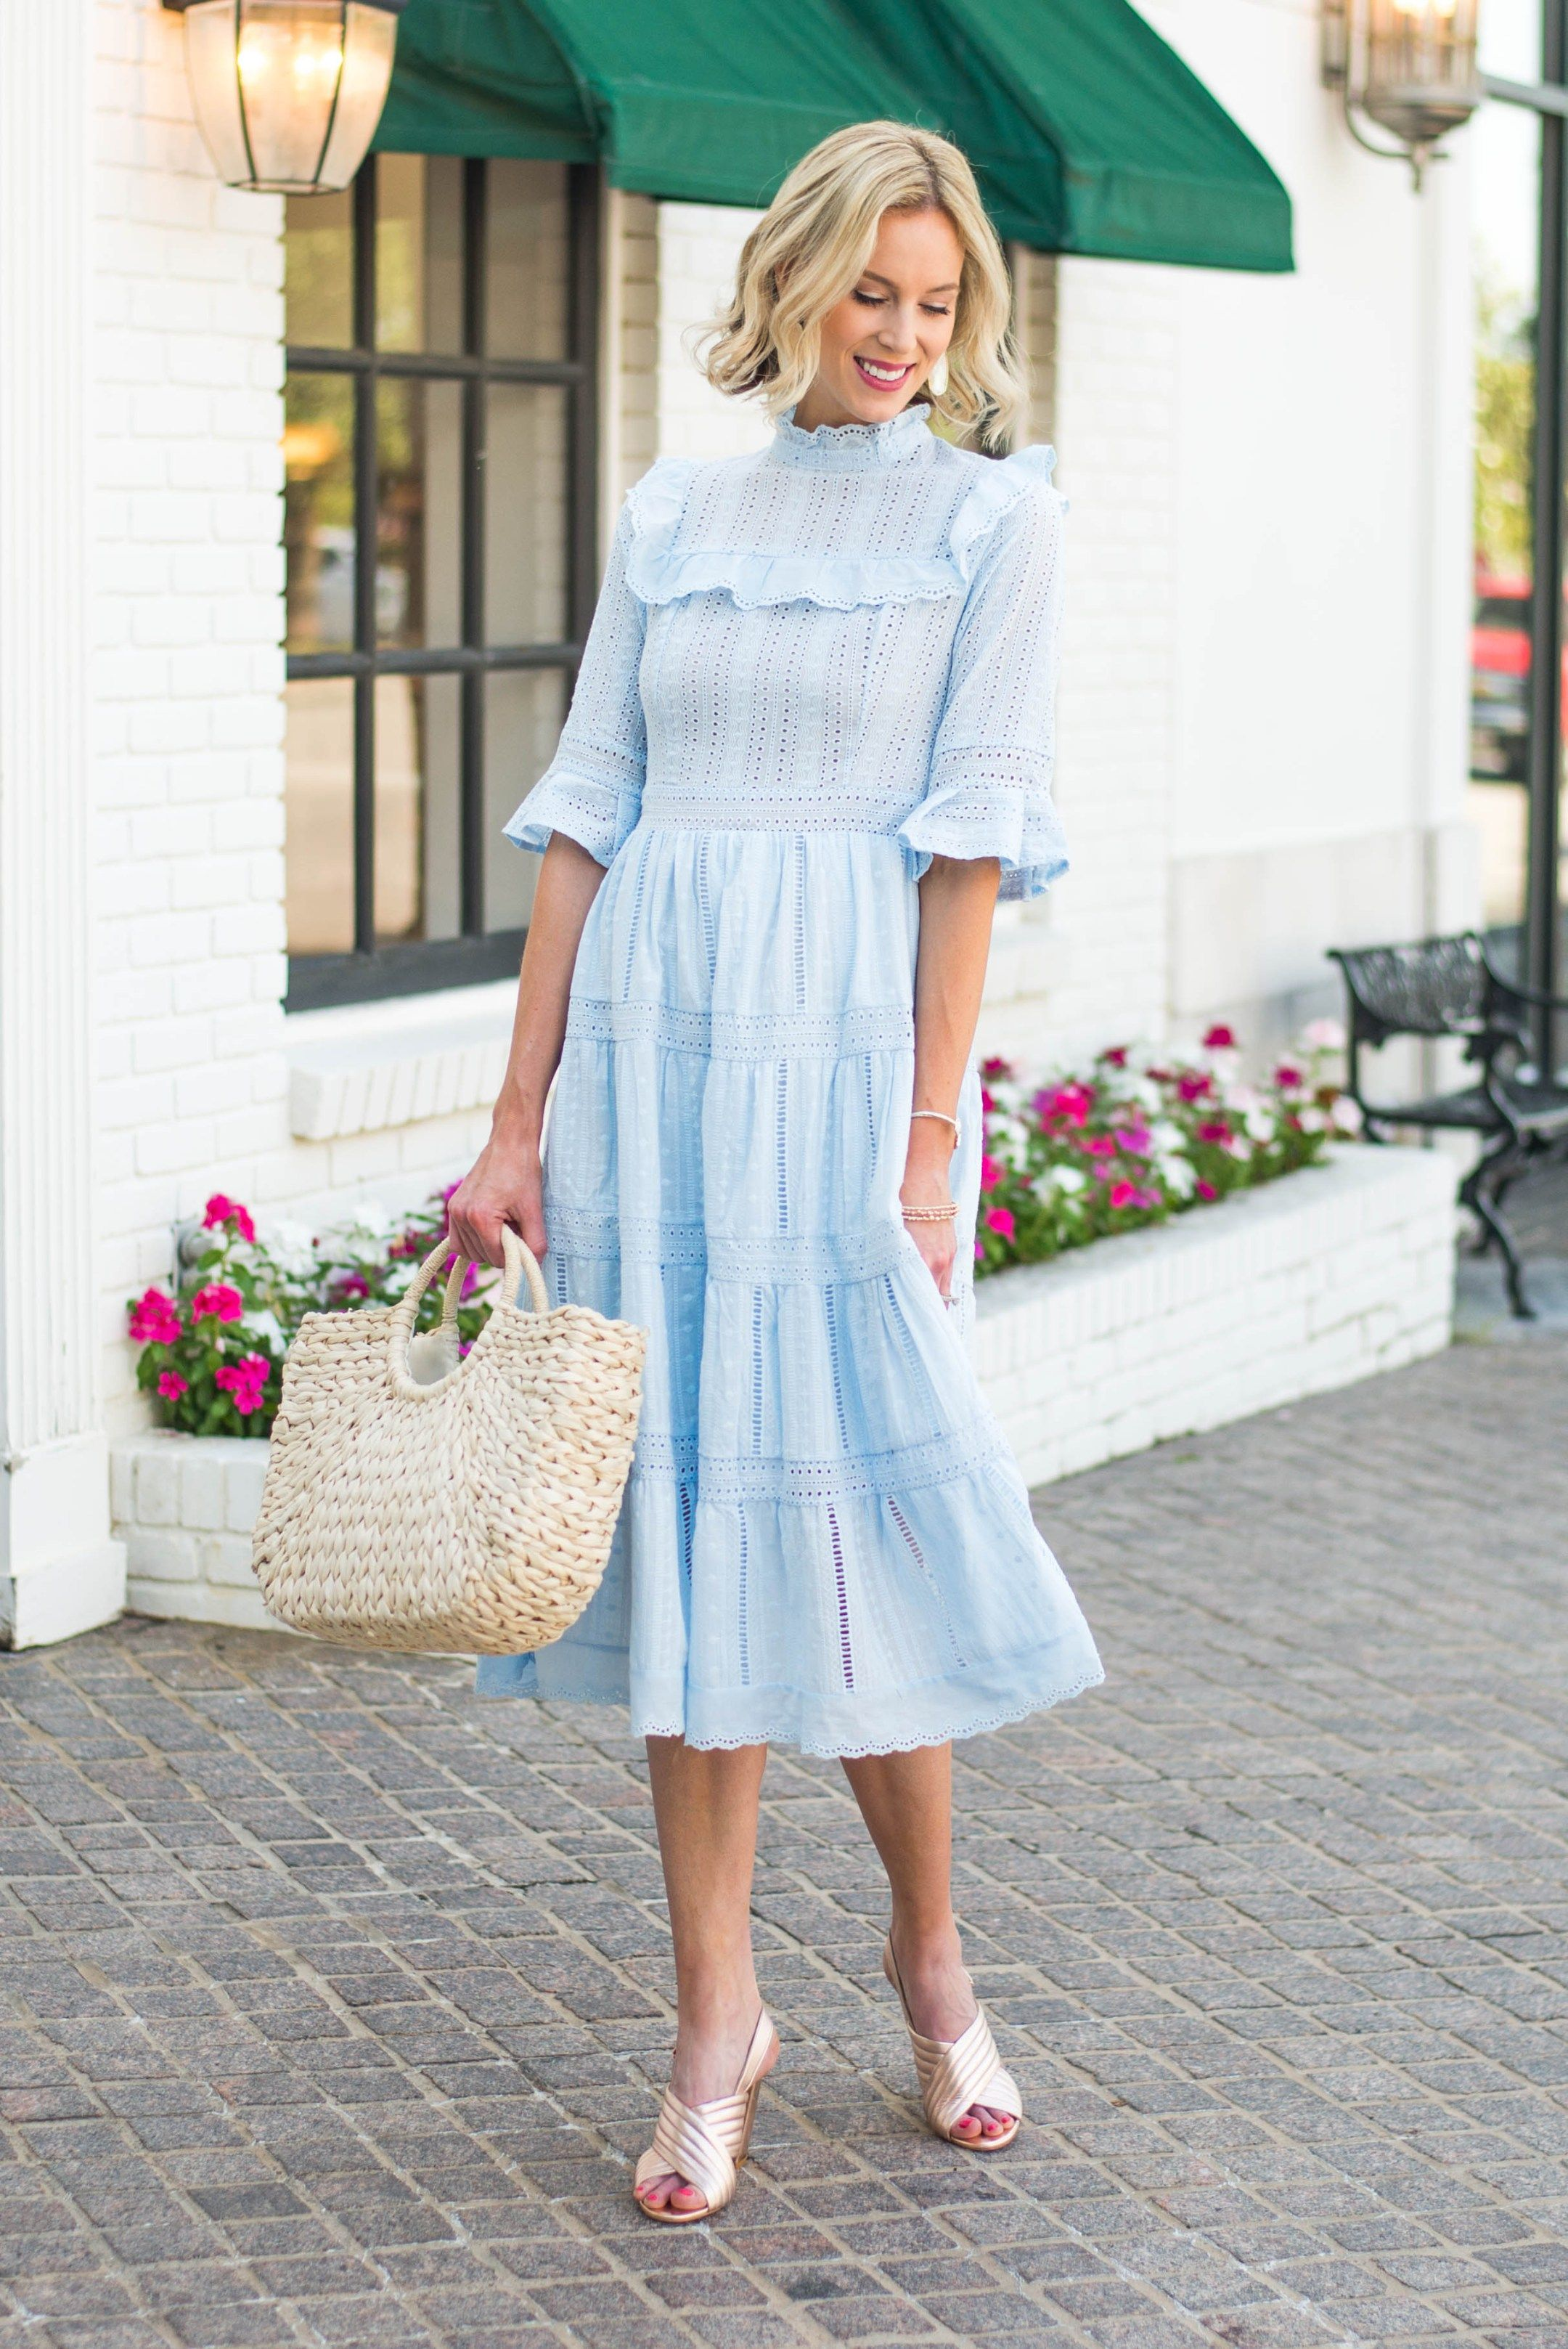 c4e065d833ff7 If dress dreams could come to life, this summer blue crochet dress would be  mine. It's perfectly feminine, flattering, versatile, and easy to wear.